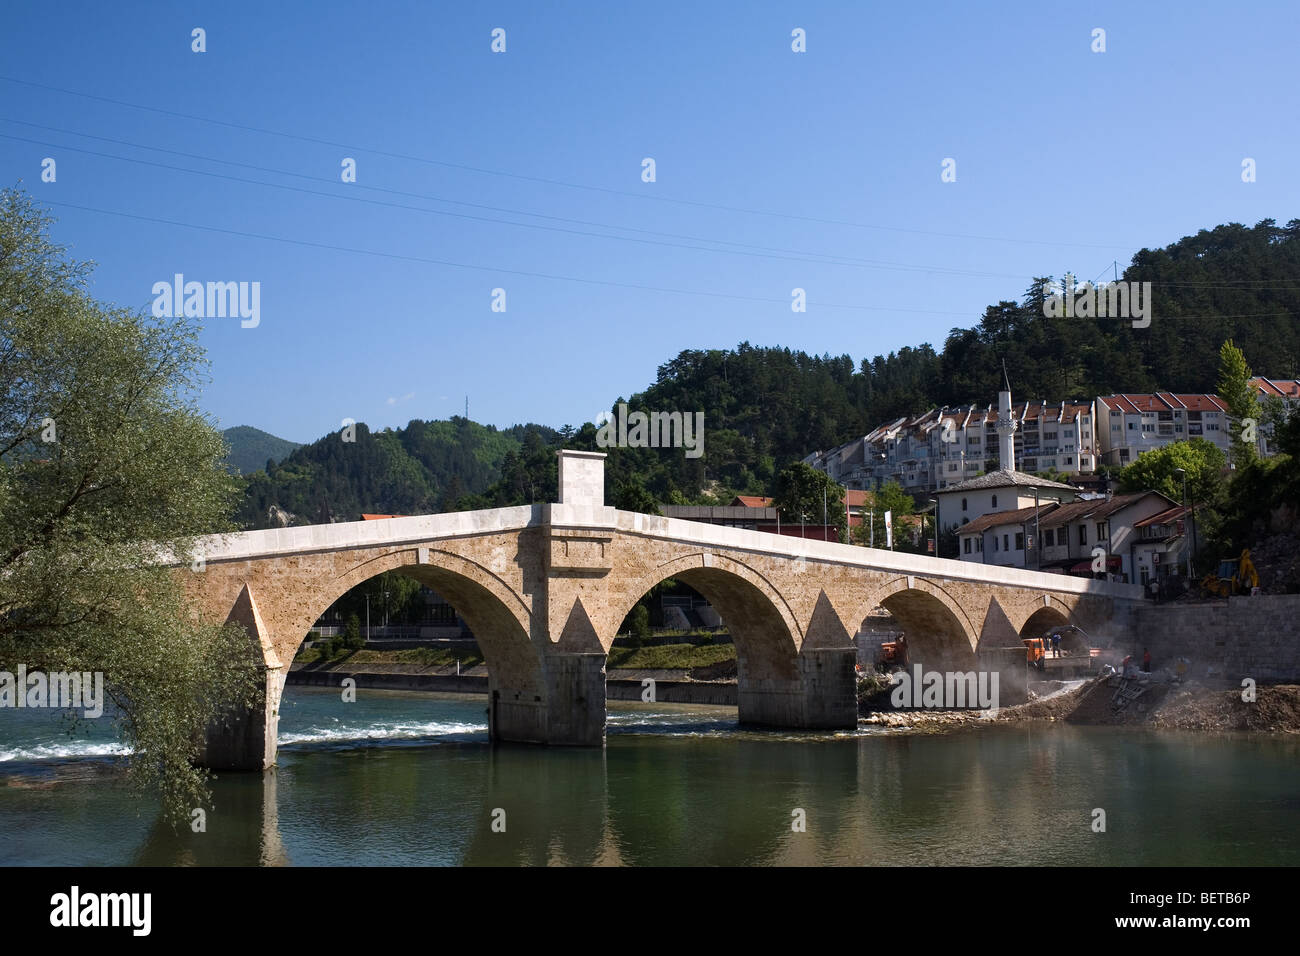 The reconstructed Old Bridge in Konjic, Bosnia. - Stock Image